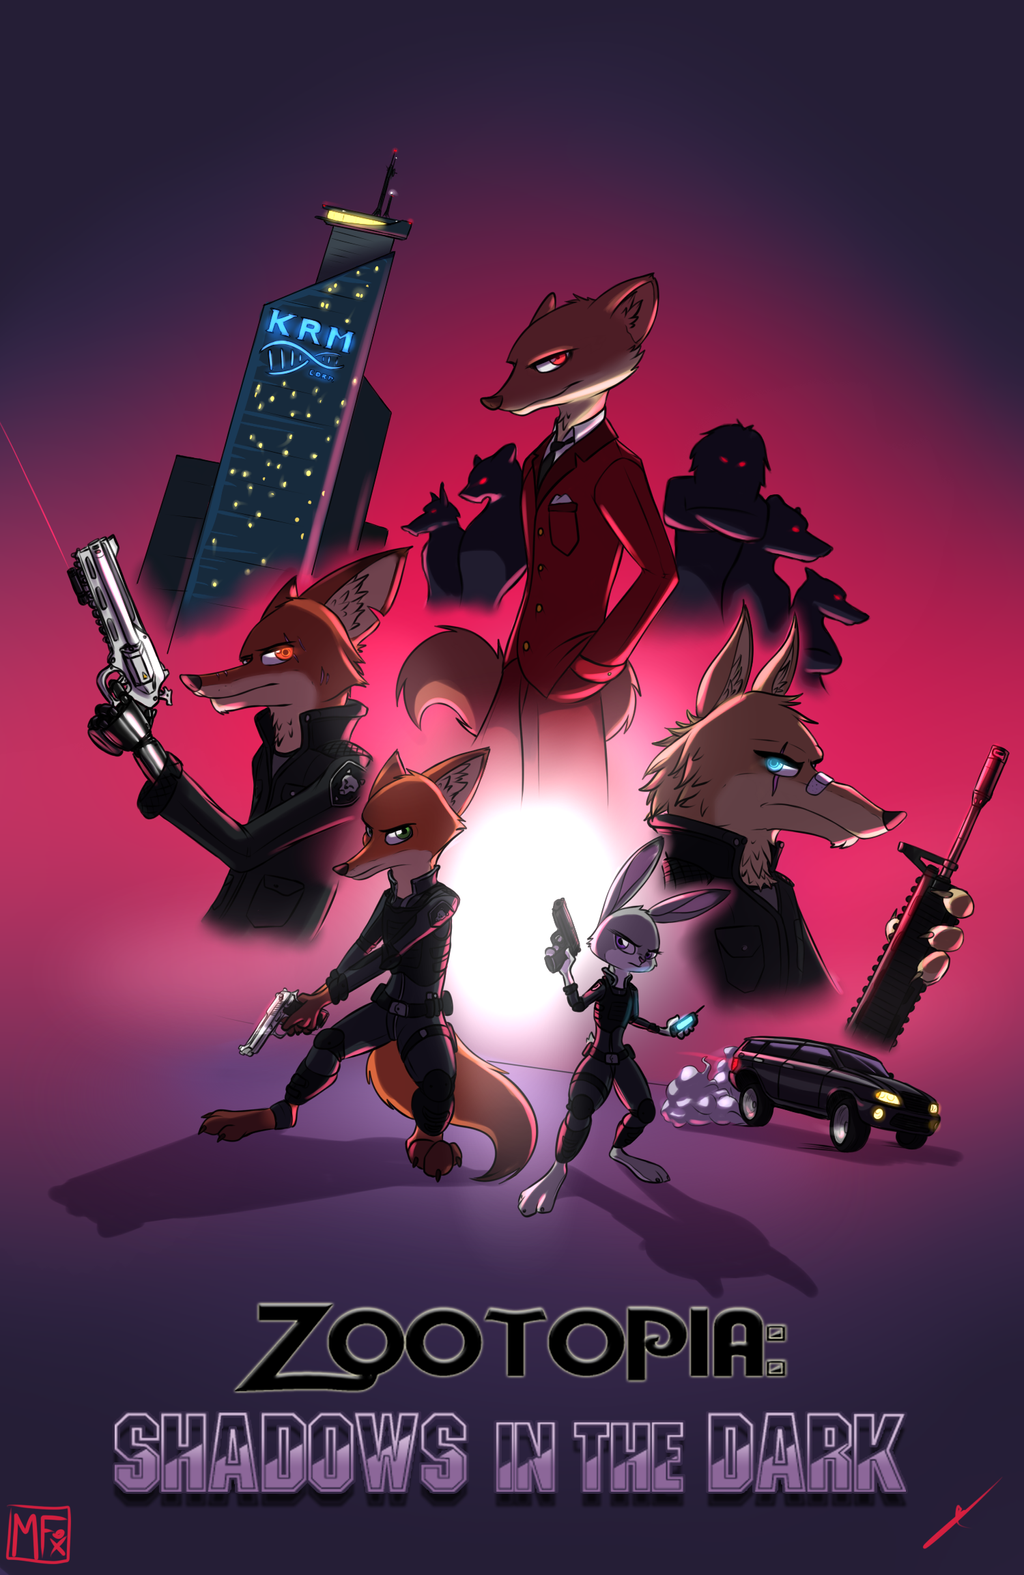 Story: Zootopia: Shadows in the Dark